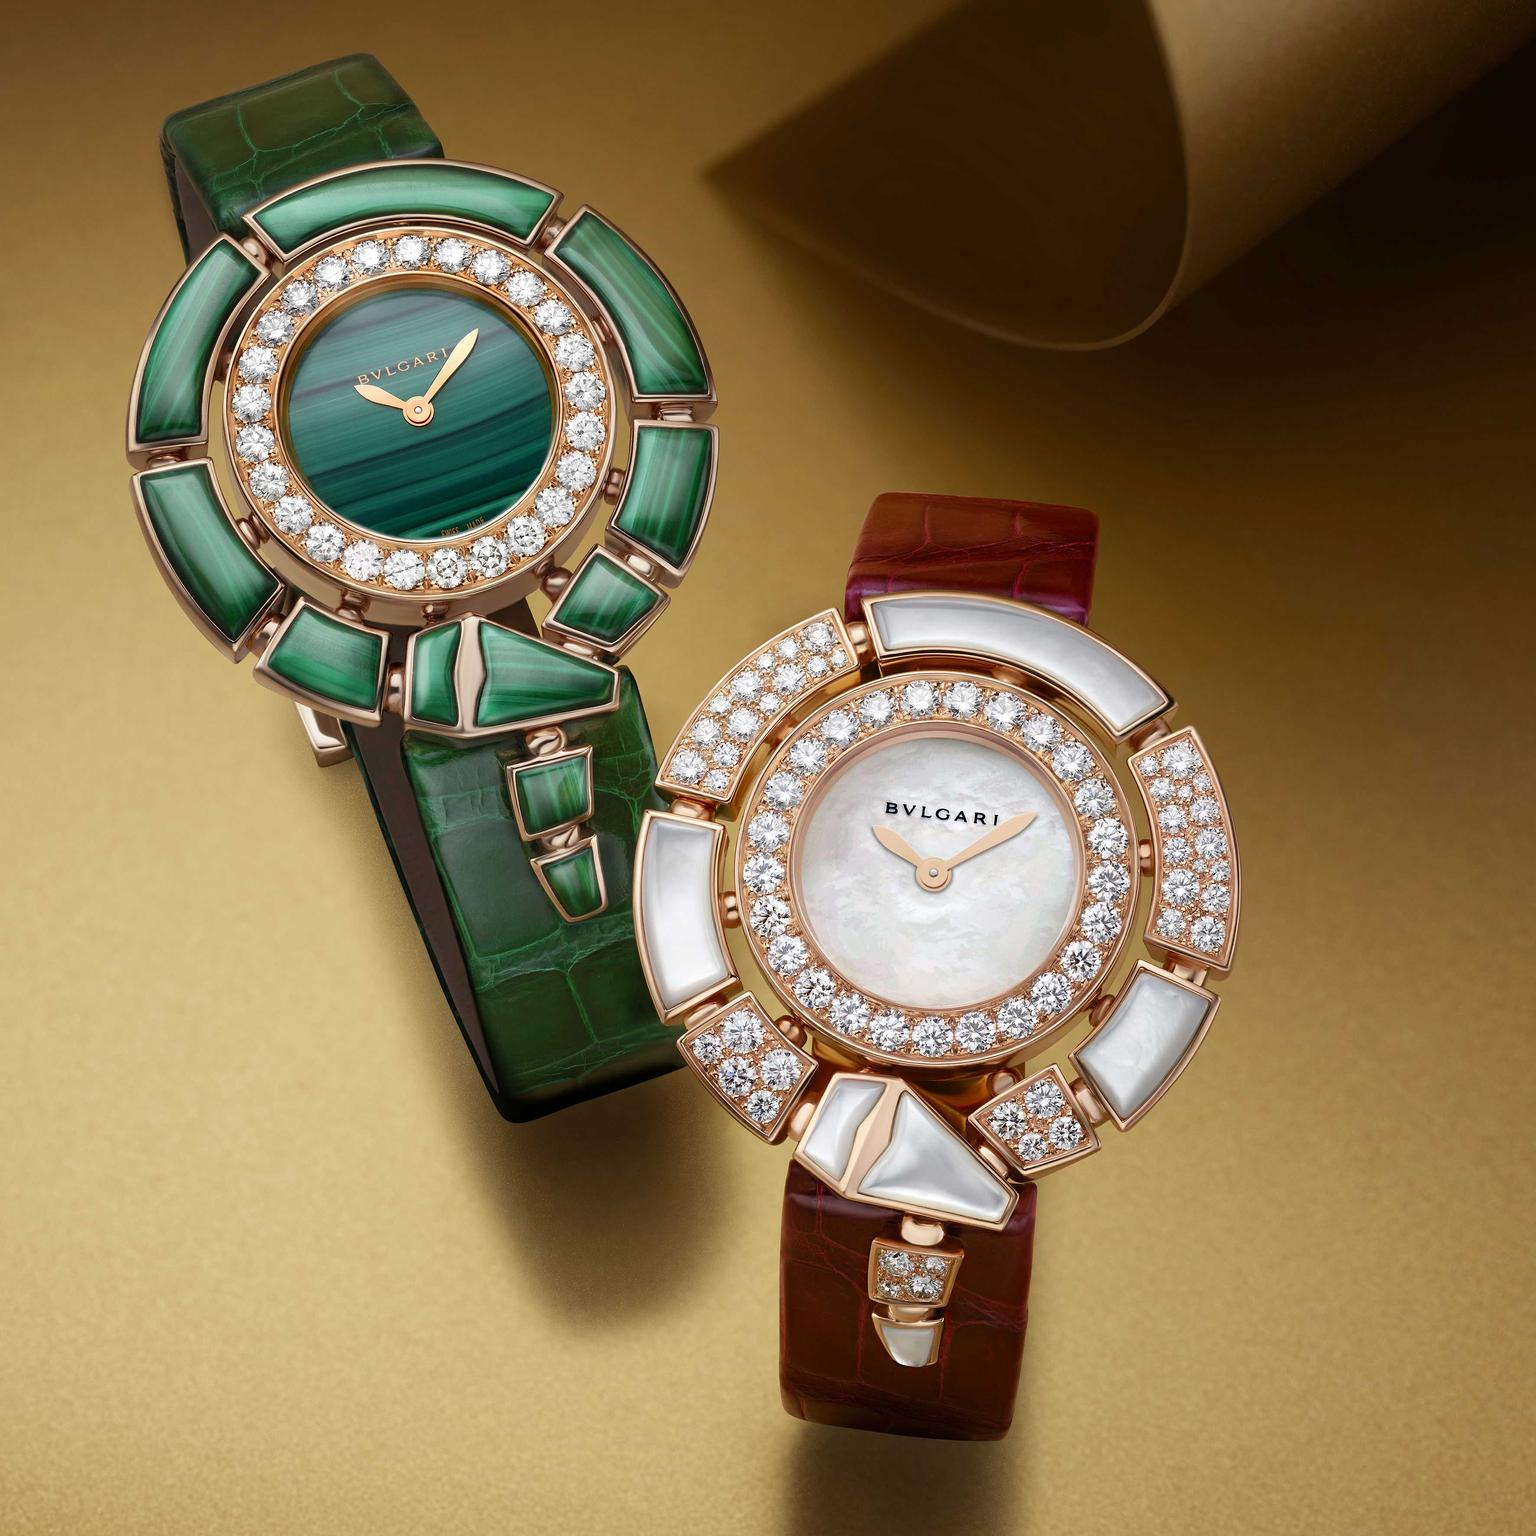 Two Serpenti Incantati watches malachite and mother of pearl